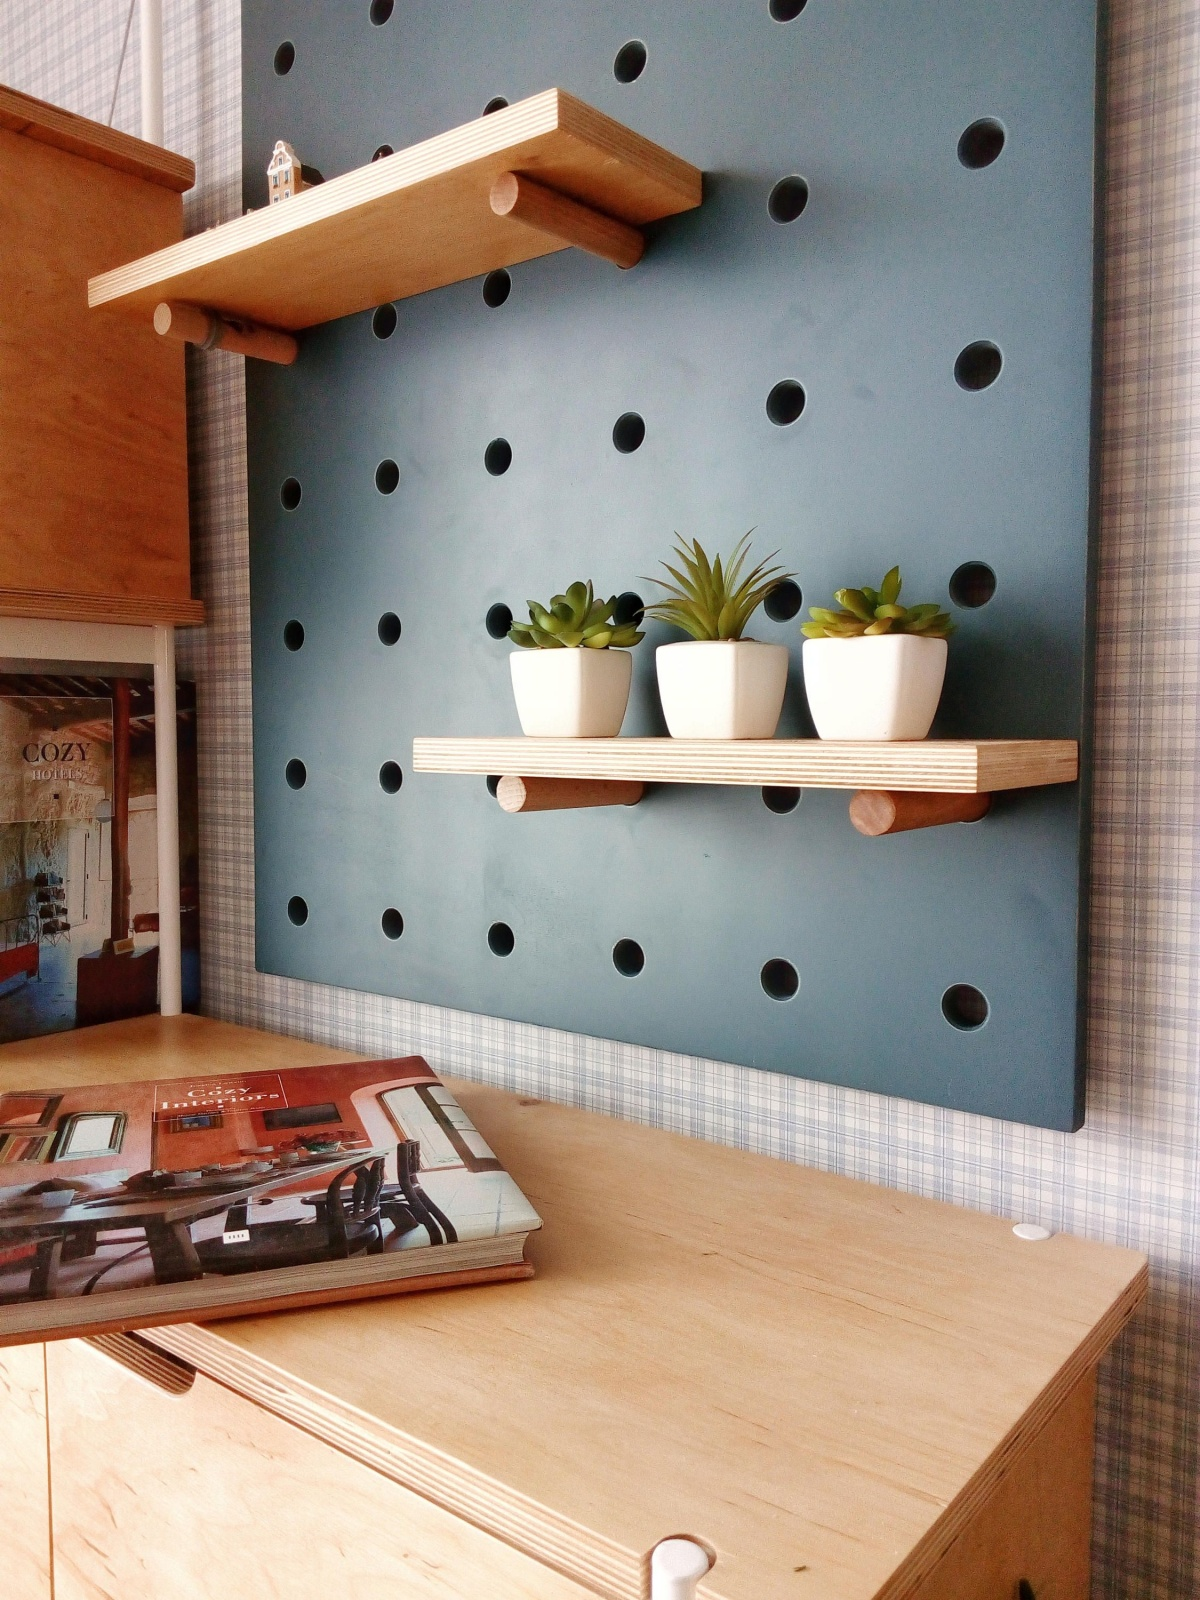 Try pegboard shelving